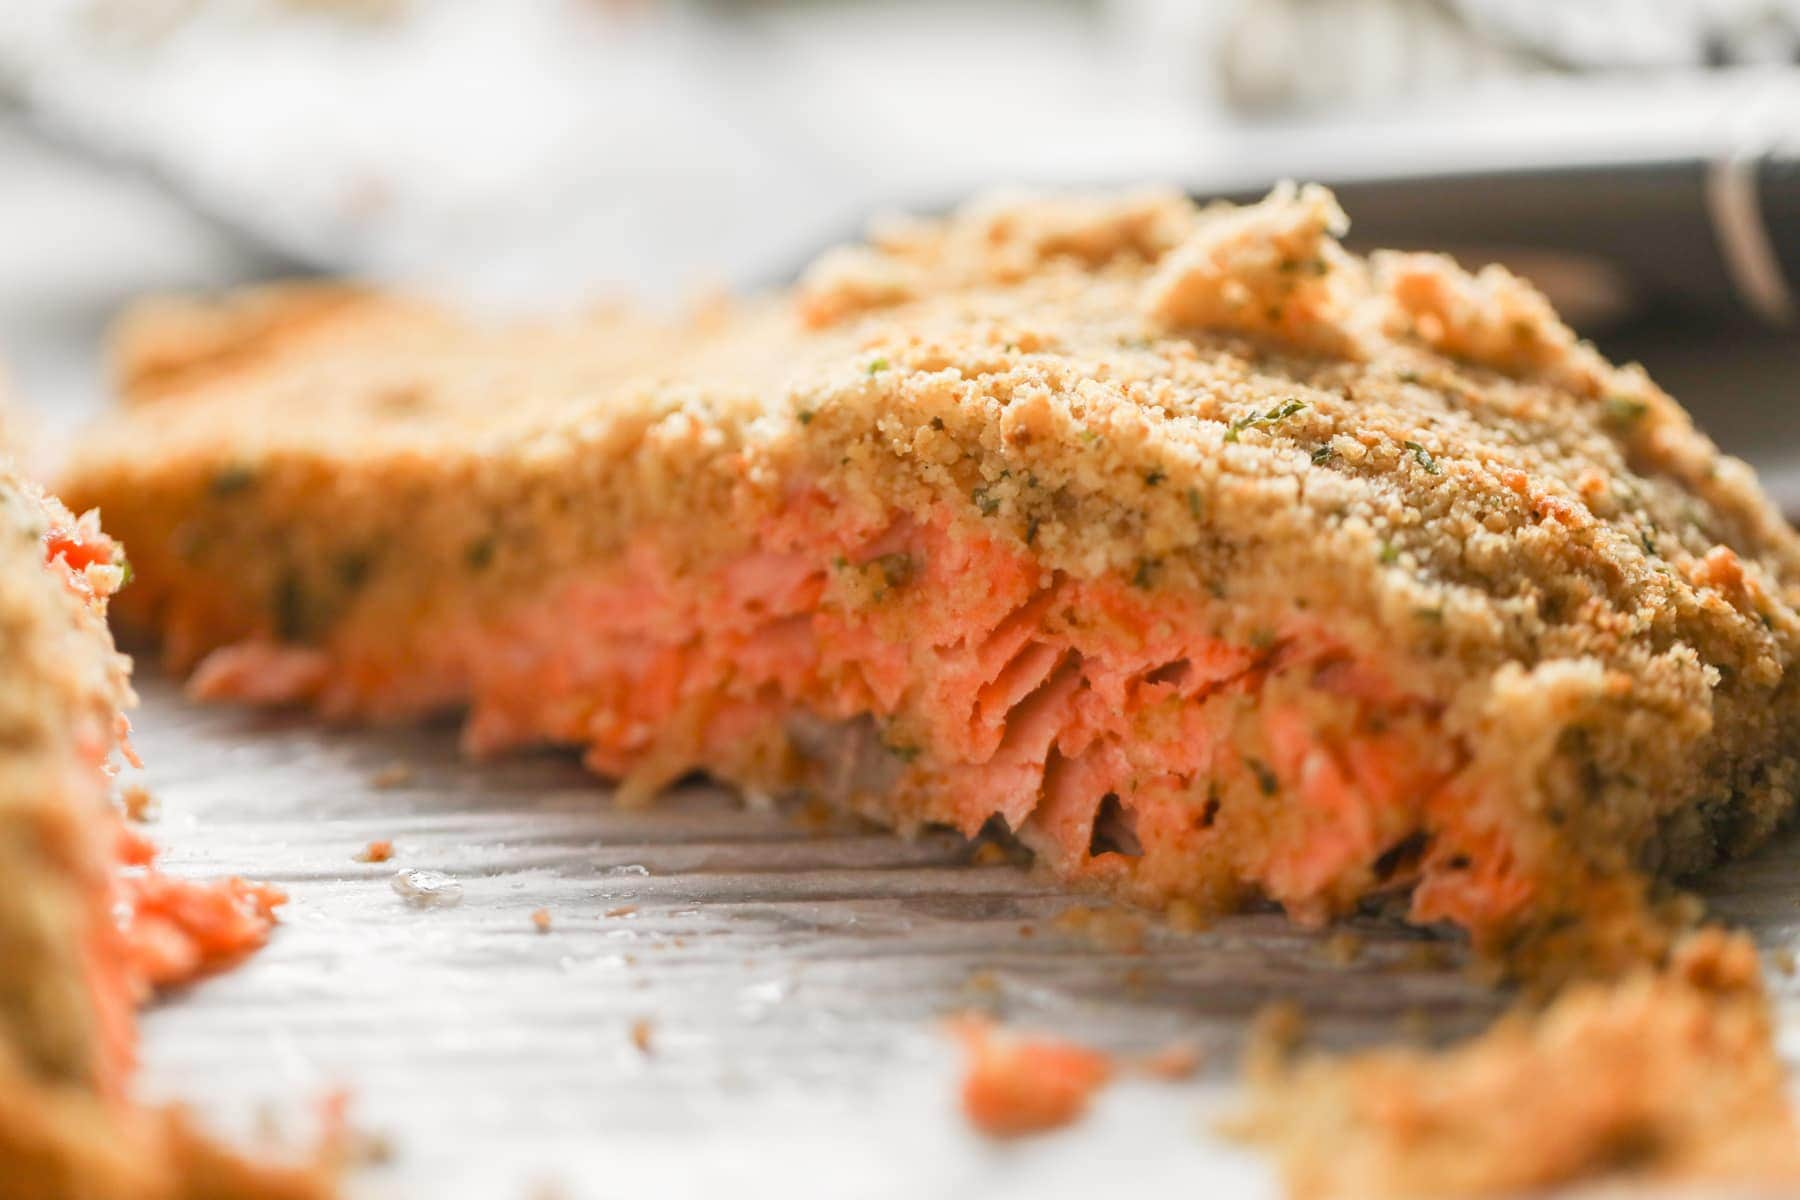 baked salmon topped with garlic butter breadcrumbs on tray